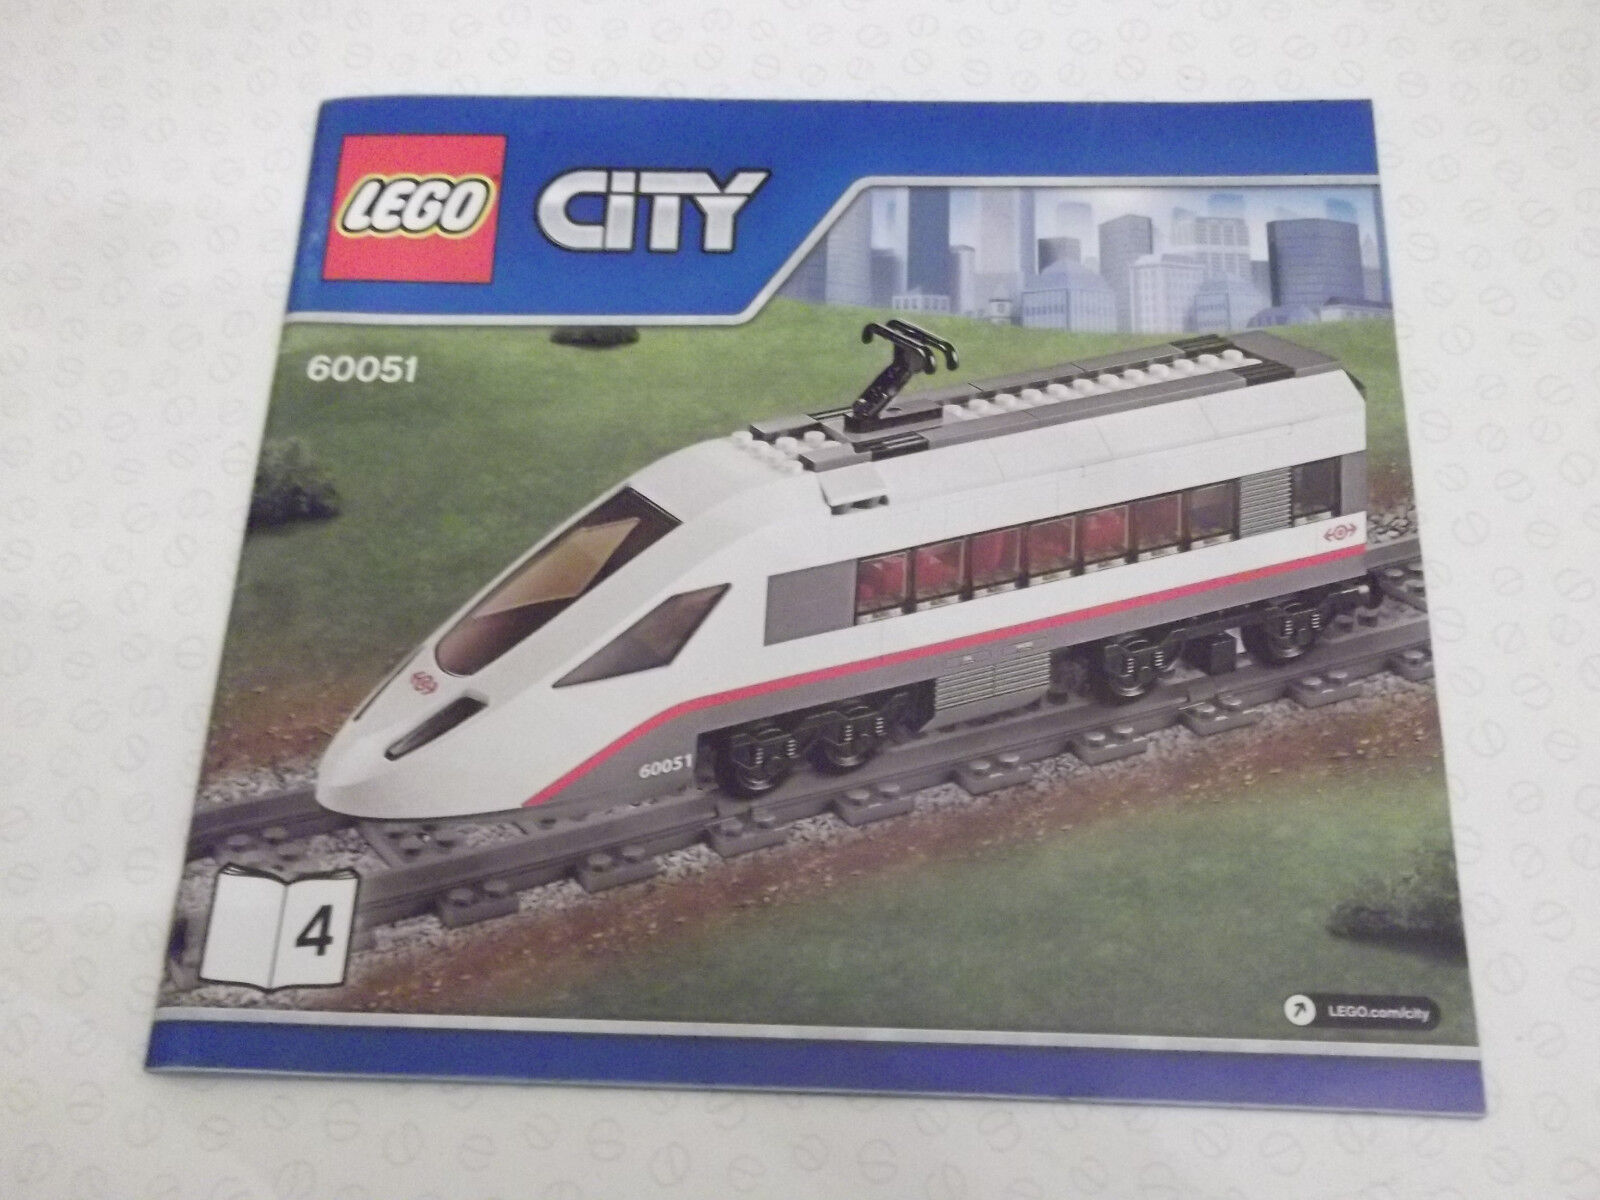 2 Lego City Locomotive 5-12 5-12 5-12 60051 new to add to layout with motor and controler 69dffd